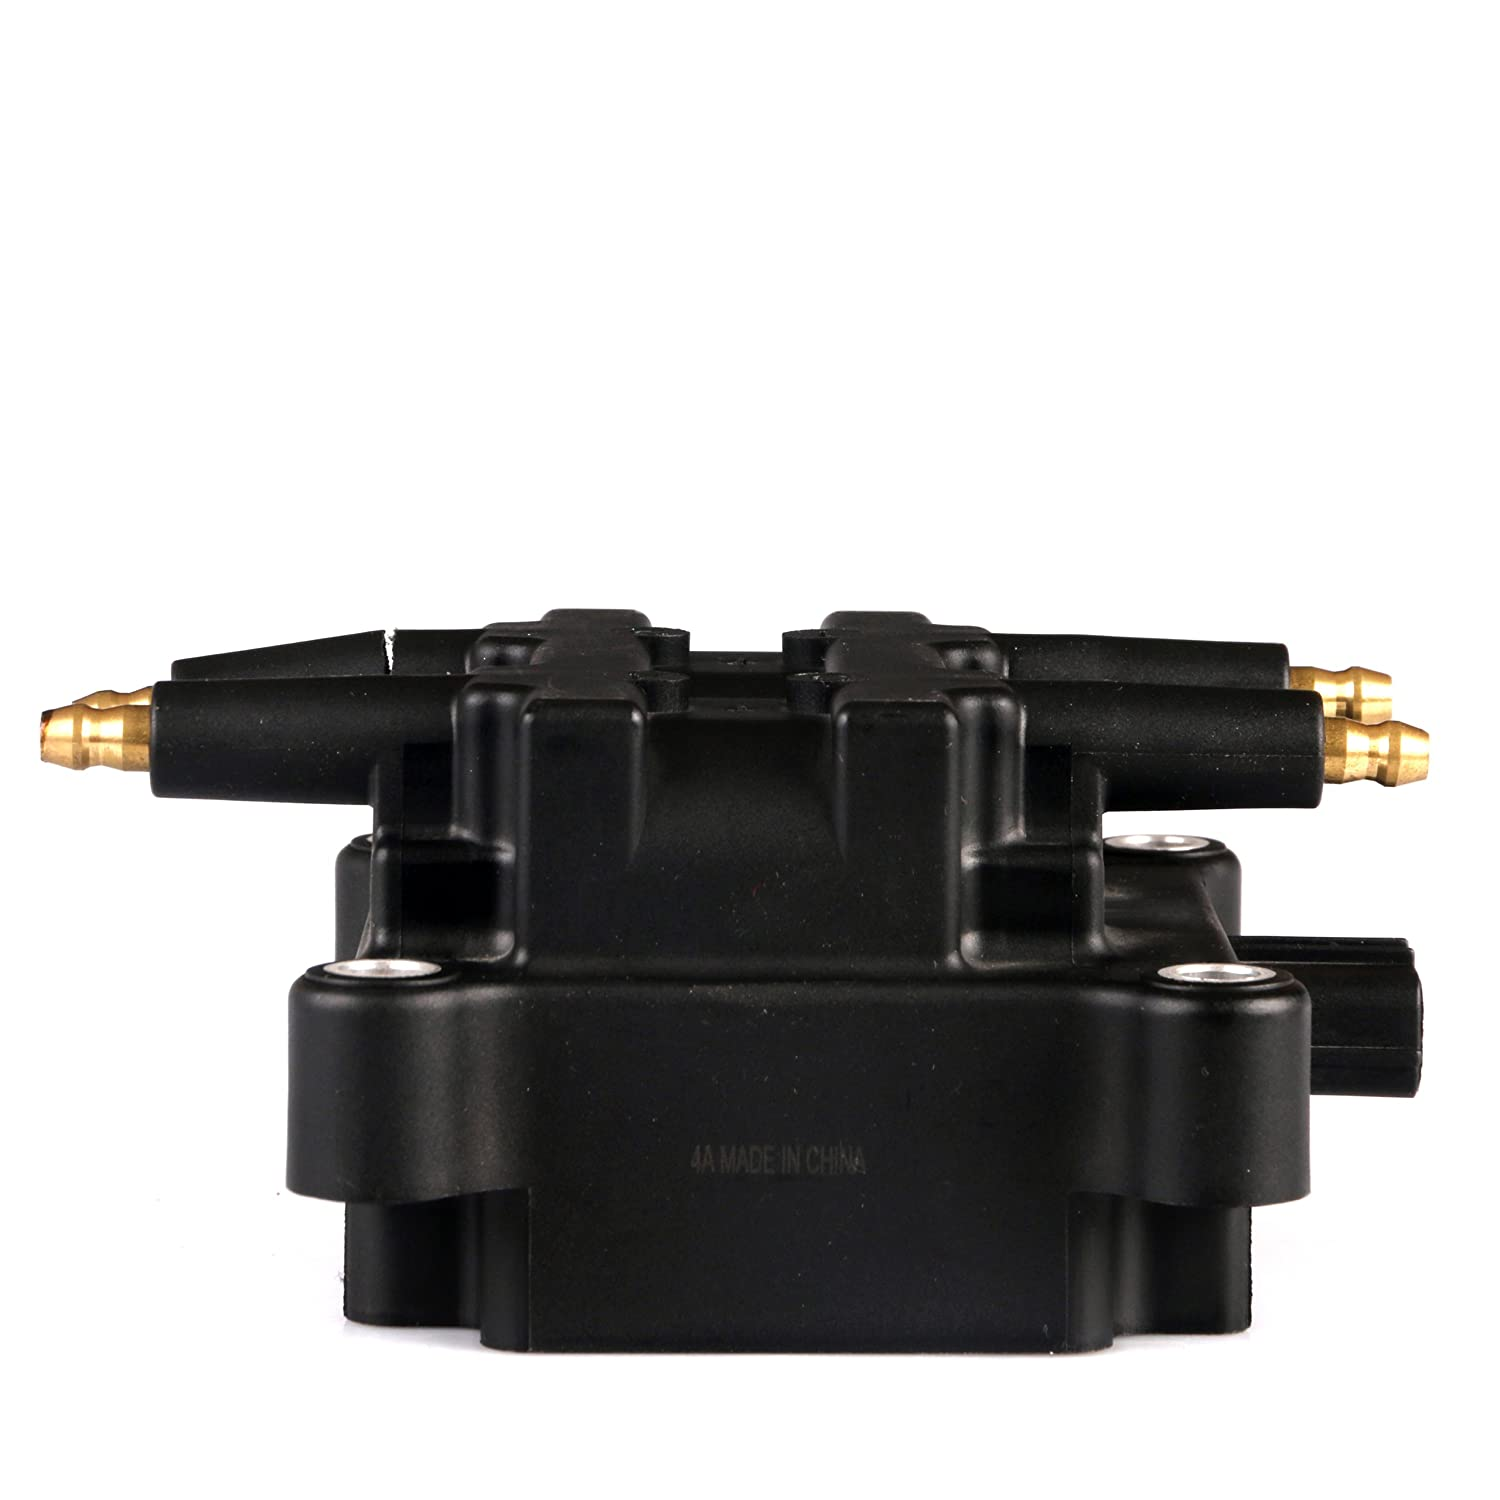 Ignition Coil For 1997 1998 Subaru Impreza Legacy H422l Outback Misfire 25l Compatible With C1150 Uf 193 Automotive